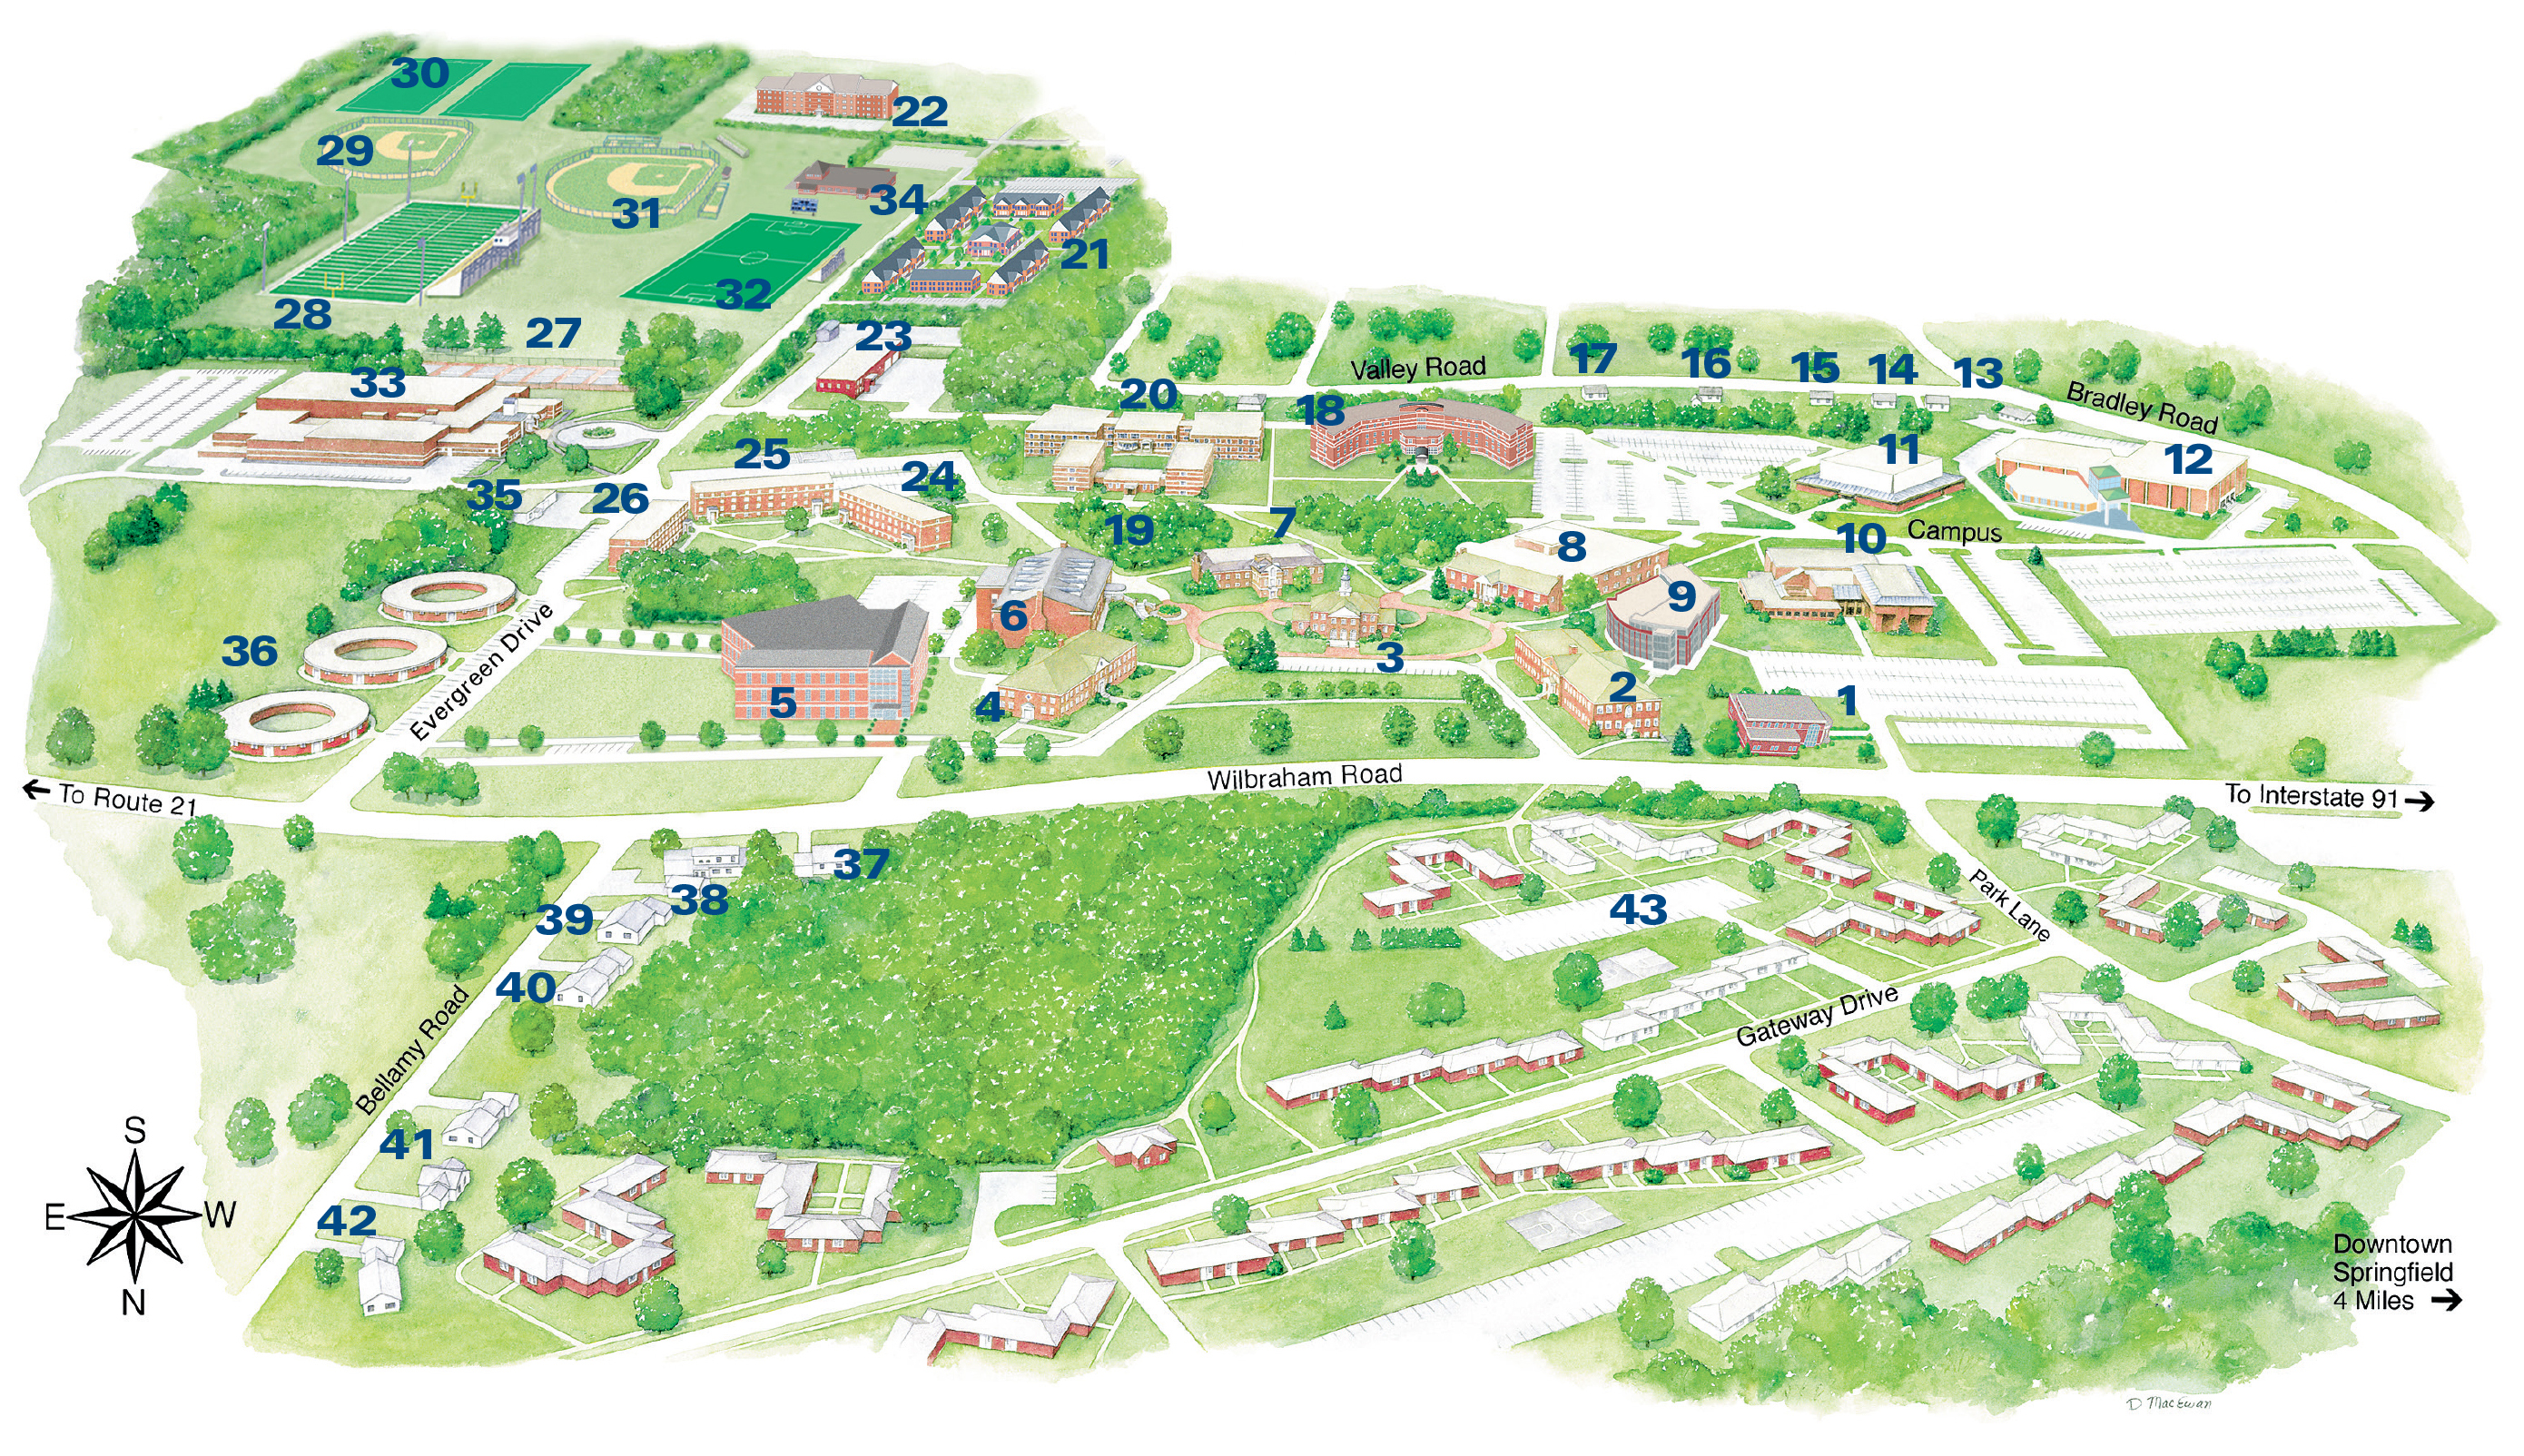 Holyoke Community College Campus Map.Map Of Springfield College Bnhspine Com